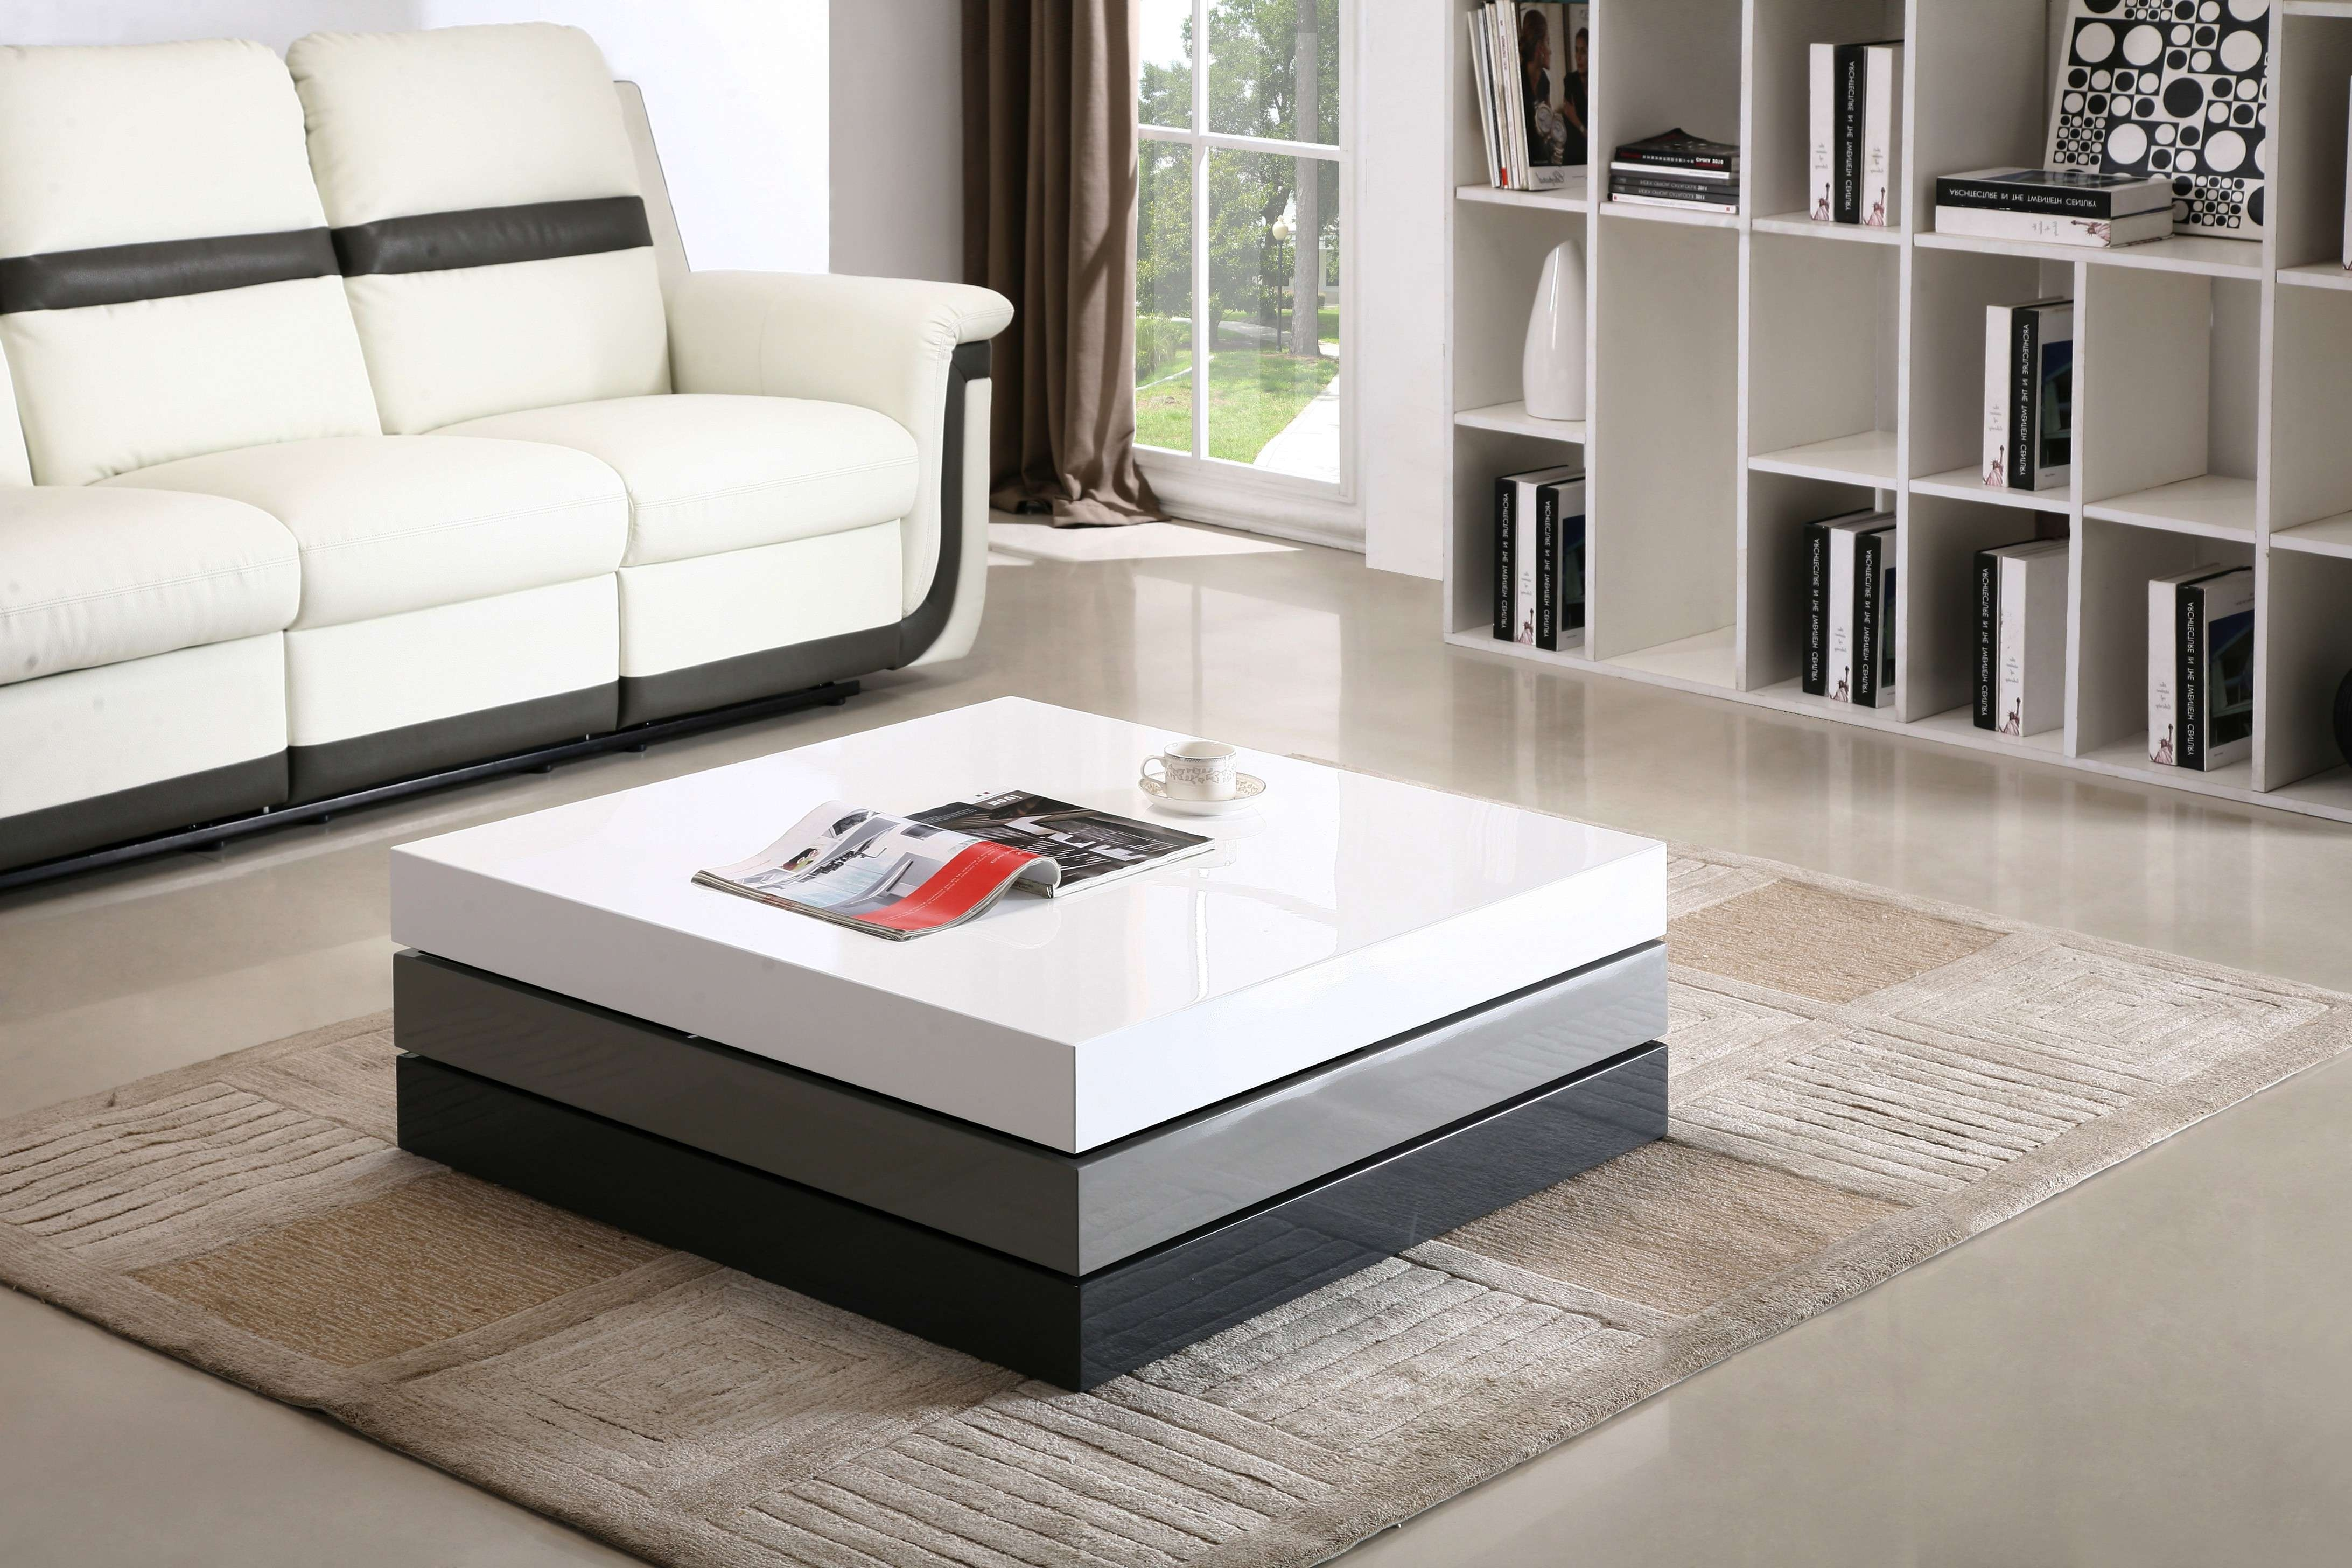 Cw01 Modern Coffee Table Within Recent Contemporary Coffee Table Sets (View 7 of 20)